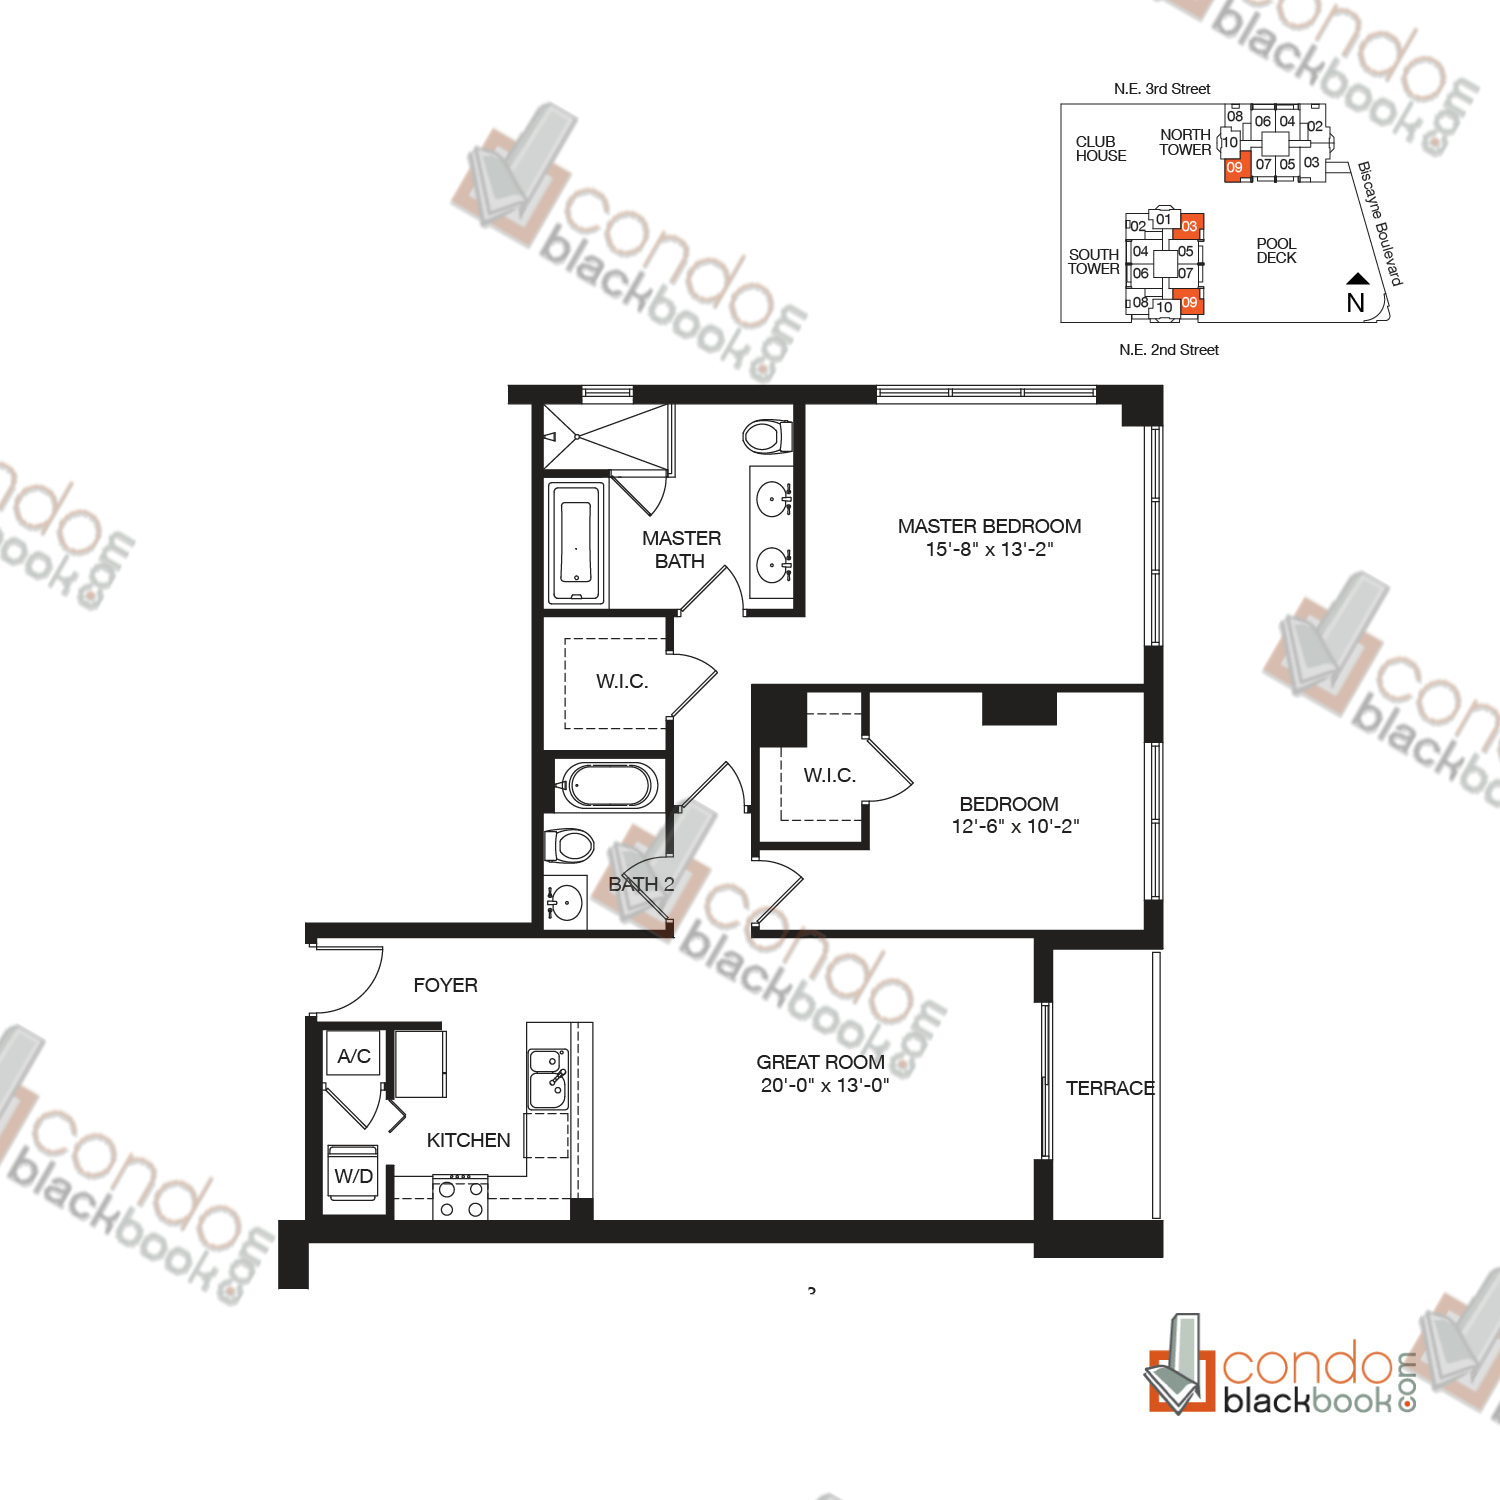 Floor plan for Vizcayne Downtown Miami Miami, model RESIDENCE 3, line 03, 09, 2/2 bedrooms, 1,195 sq ft